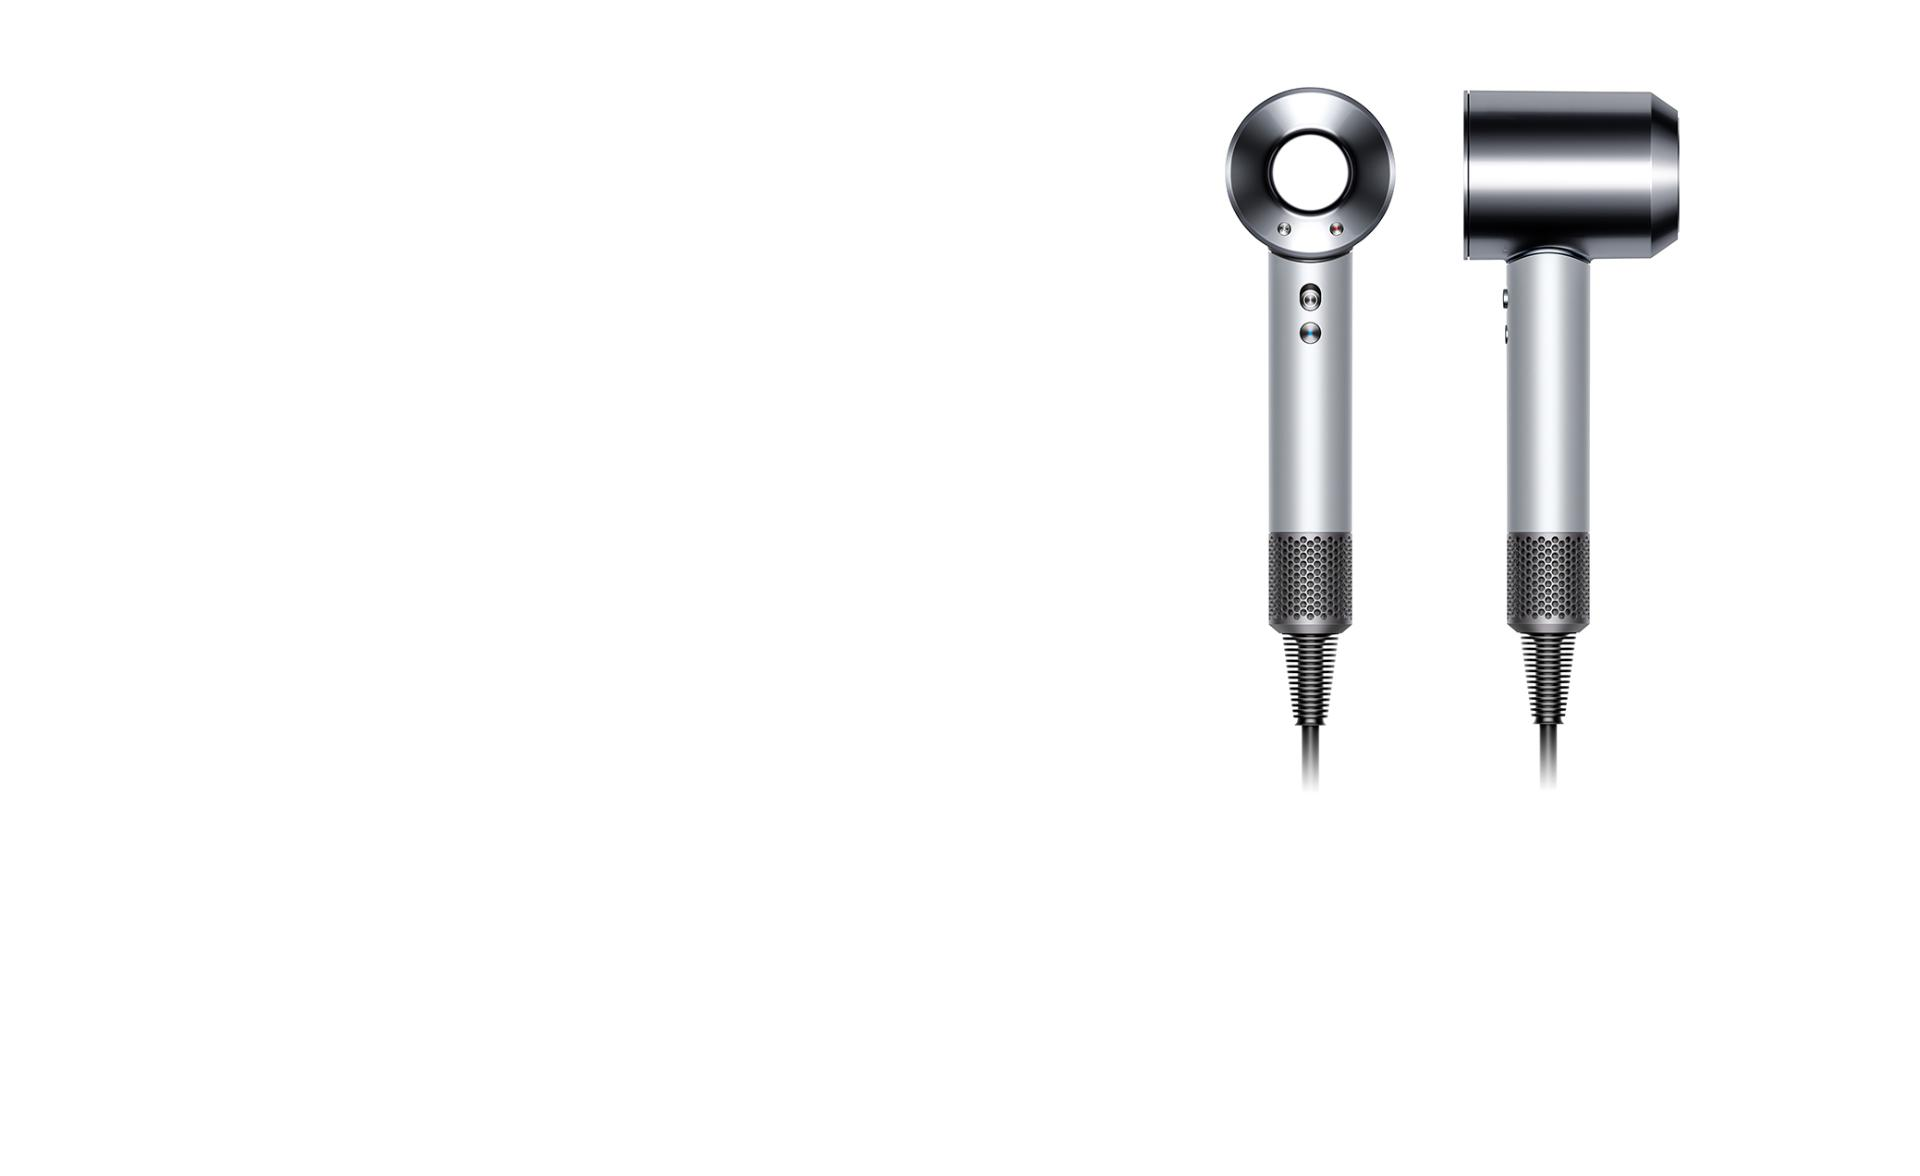 The Dyson supersonic from front angle and side